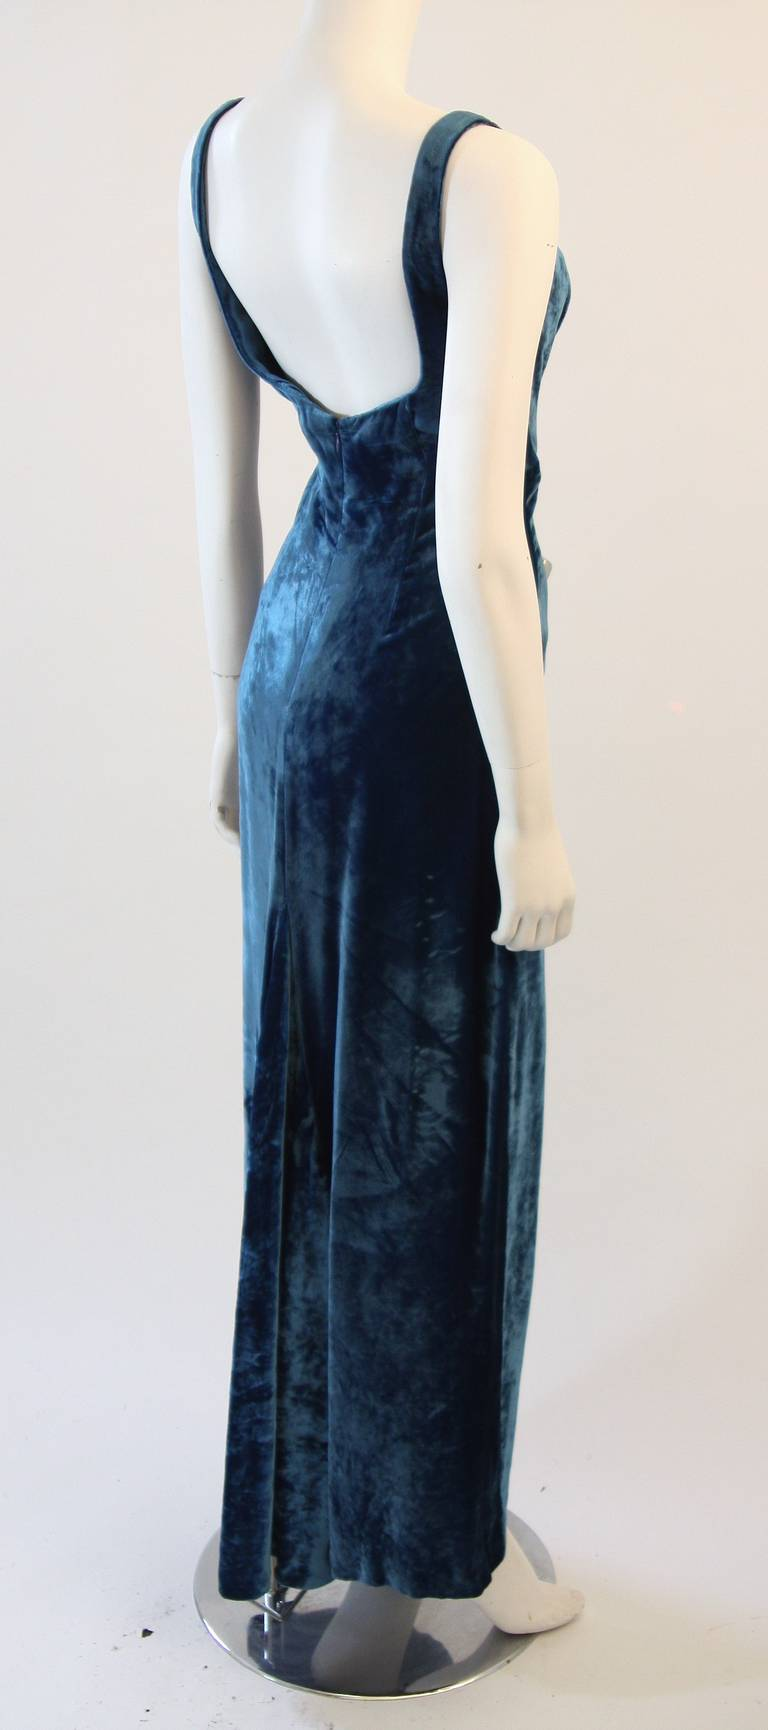 Dolce and Gabbana Jewel Blue Crushed Velvet Gown Circa 2000 Size 42 5